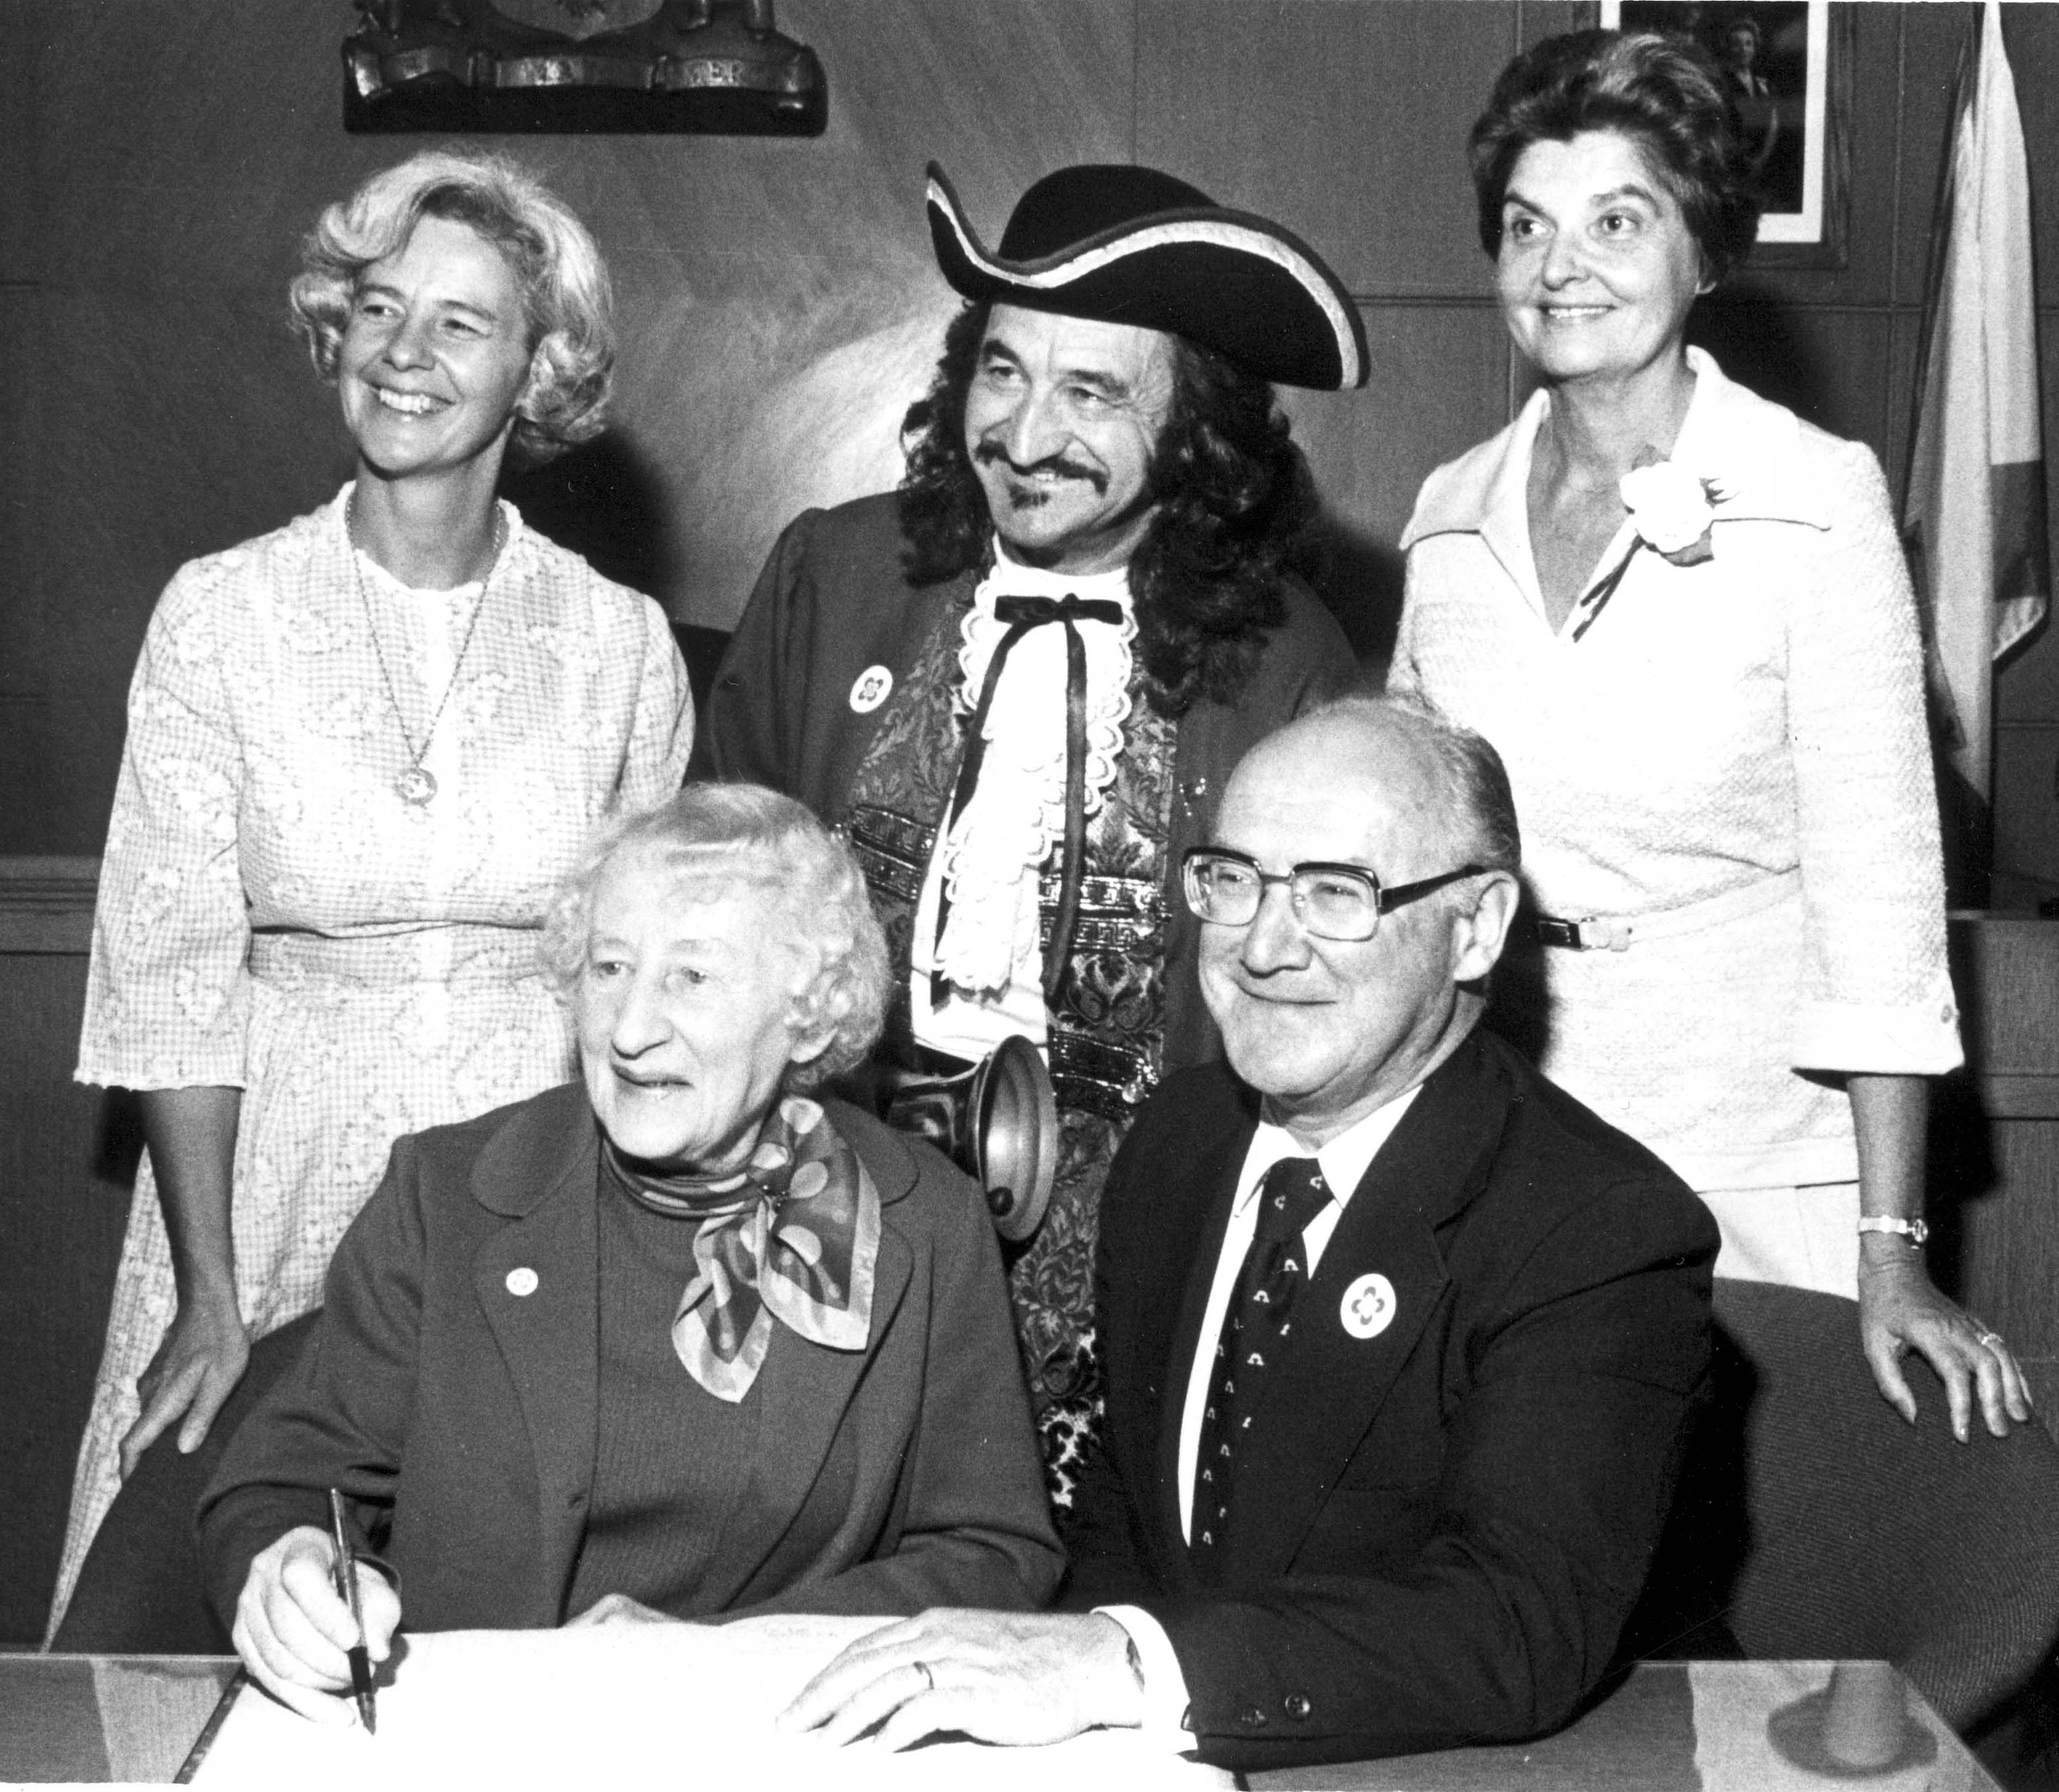 Black & white photo of a signing ceremony